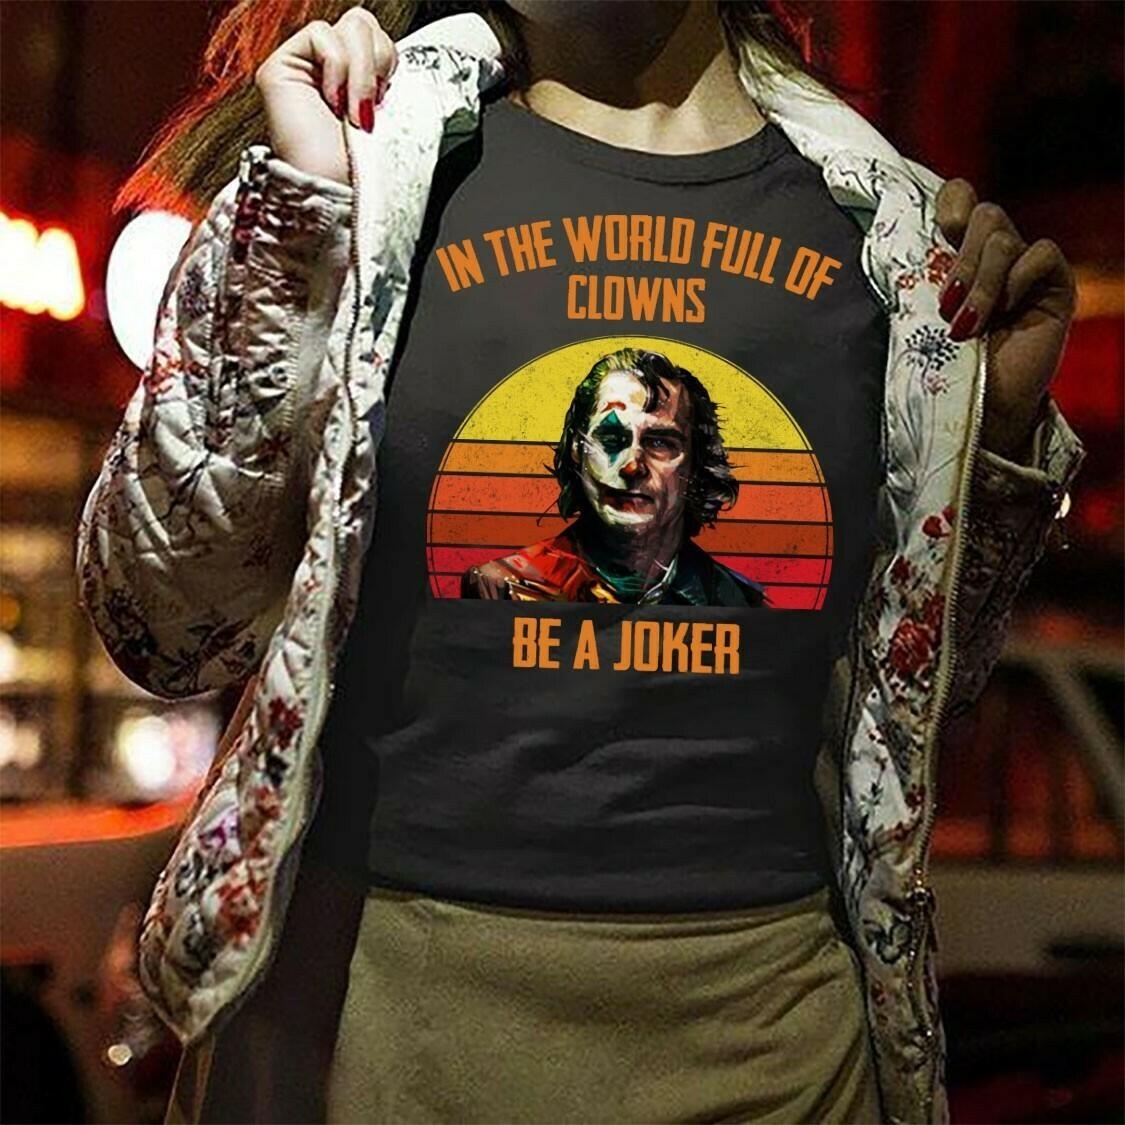 Joaquin Phoenix 2019 In The World Full Of Clowns Be A Joker Gifts Idea For Fans Here Comes Your Favorite Villain Halloween Movie T-shirt Long Sleeve Sweatshirt Hoodie Jolly Family Gifts